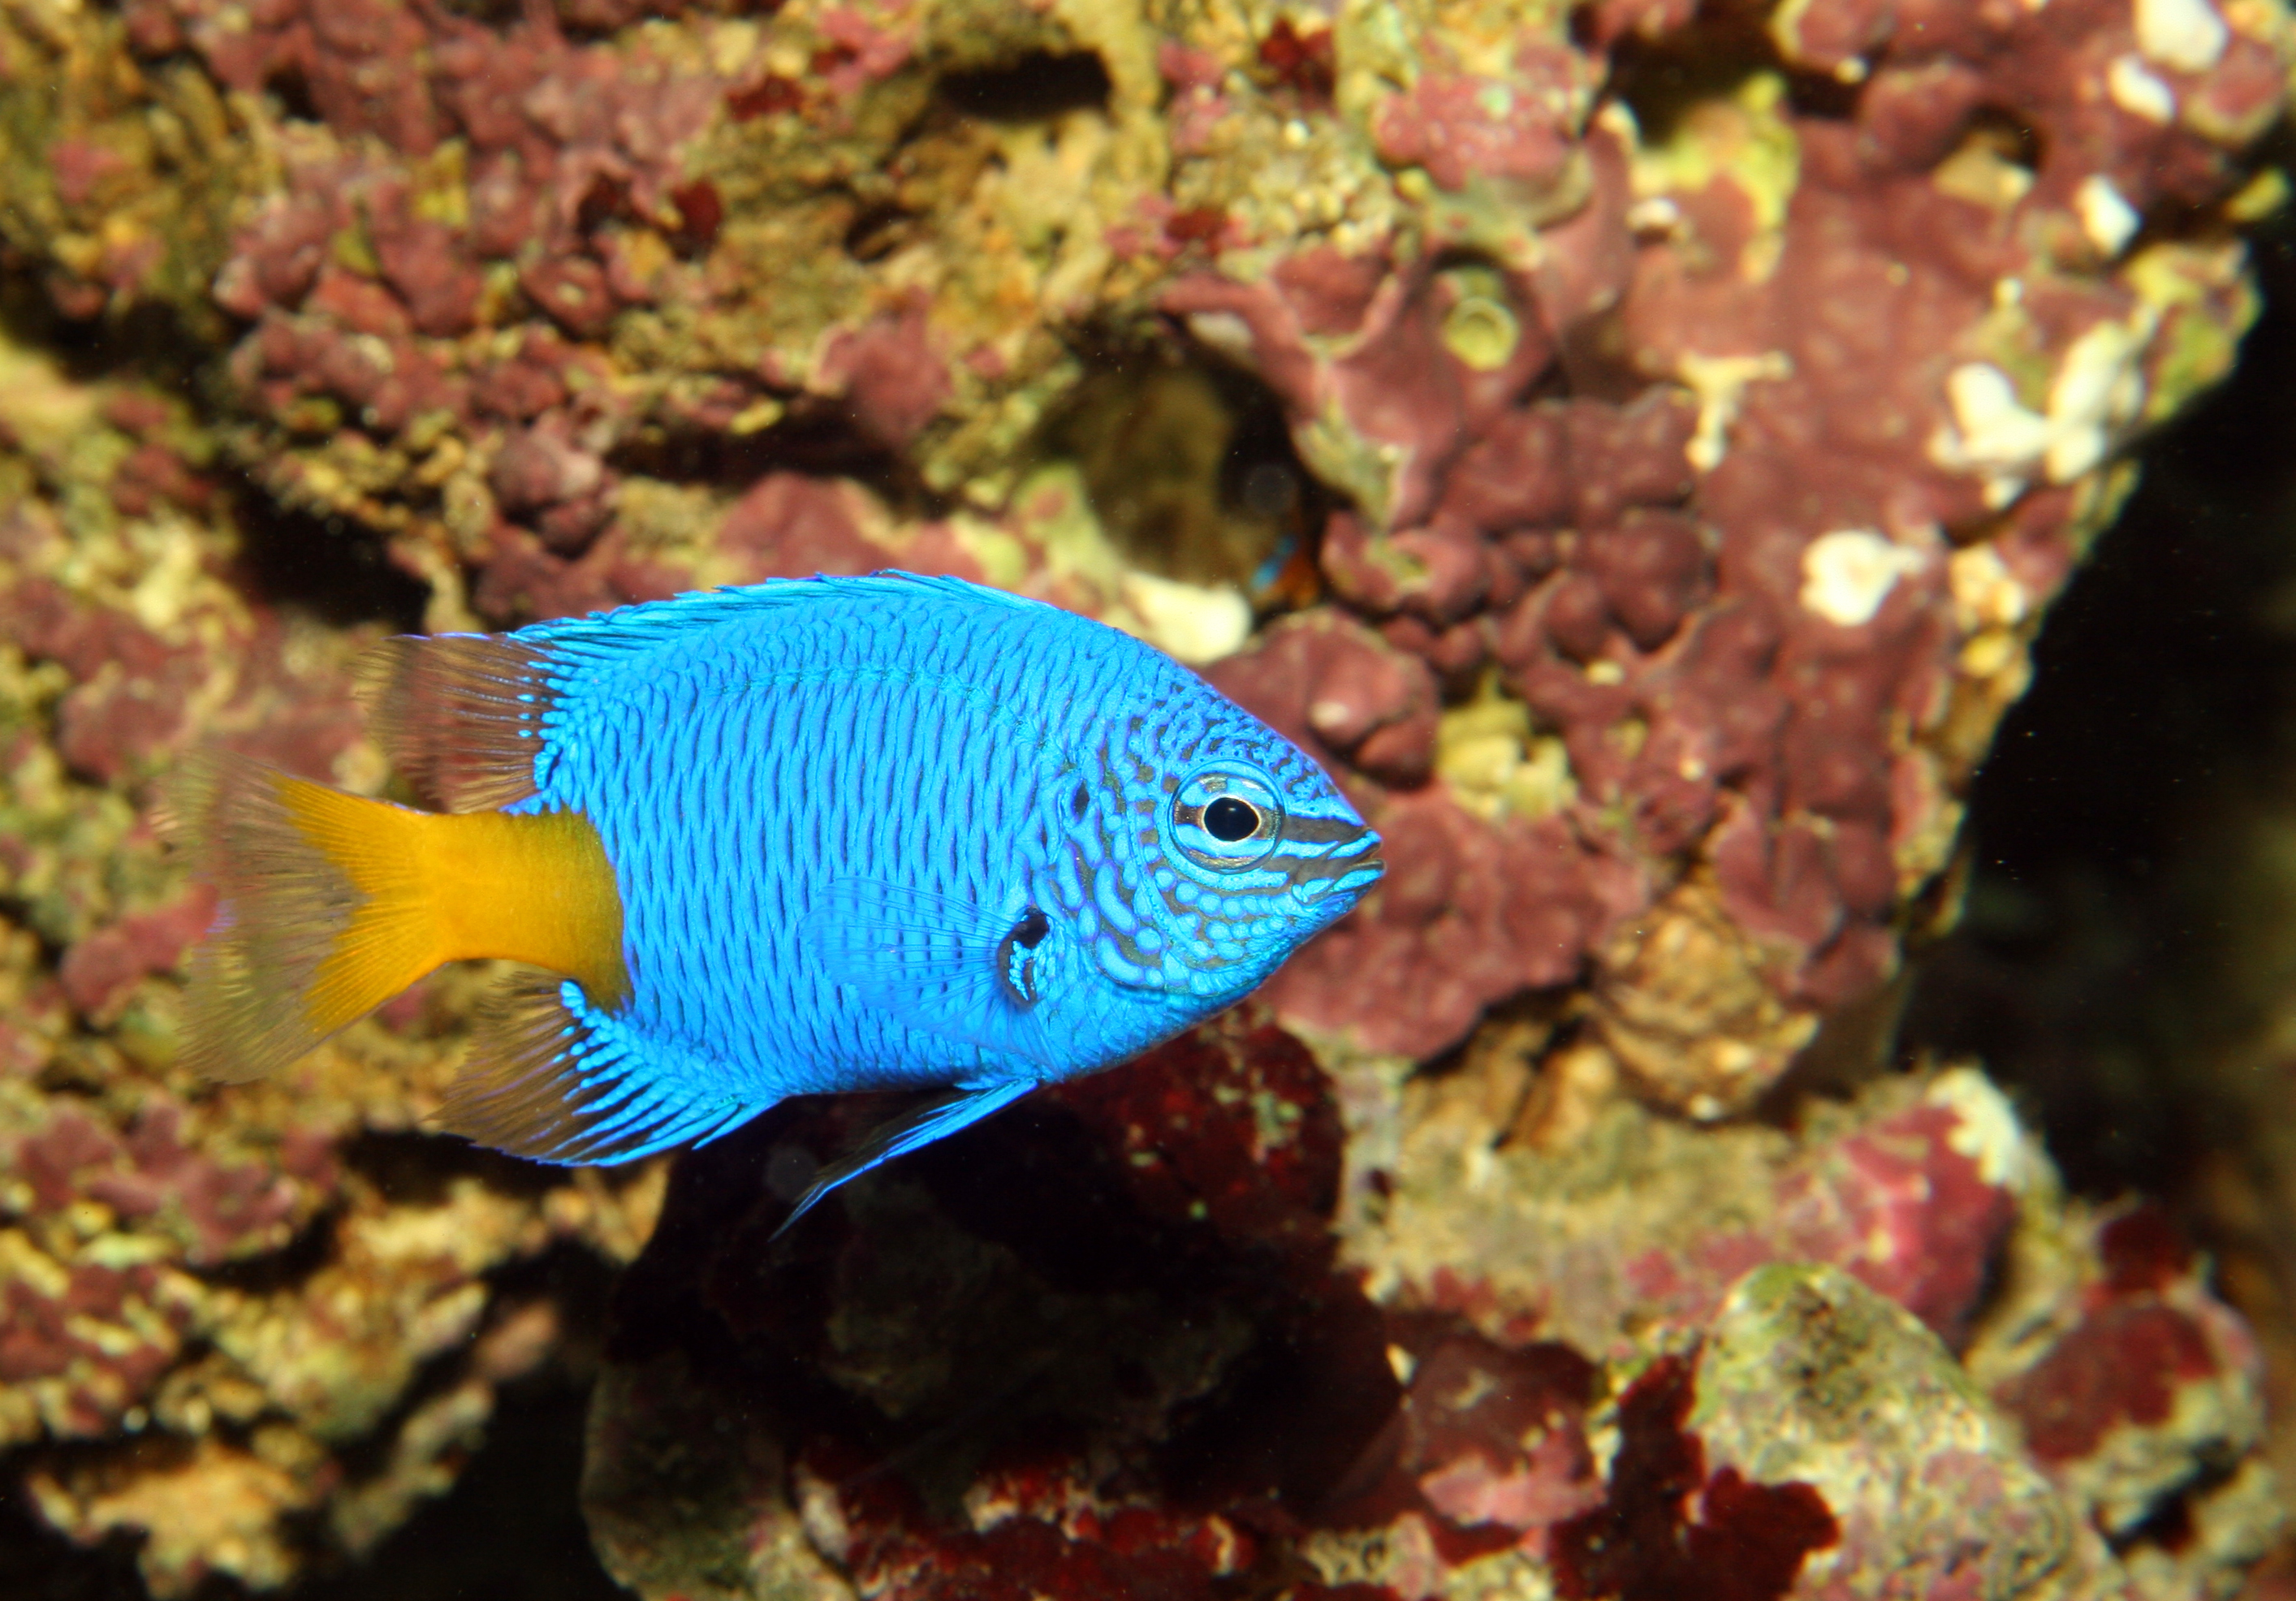 Chrysptera parasema (yellowtail blue damselfish), Aquarium 1.jpg - Chrysptera parasema (yellowtail blue damselfish)